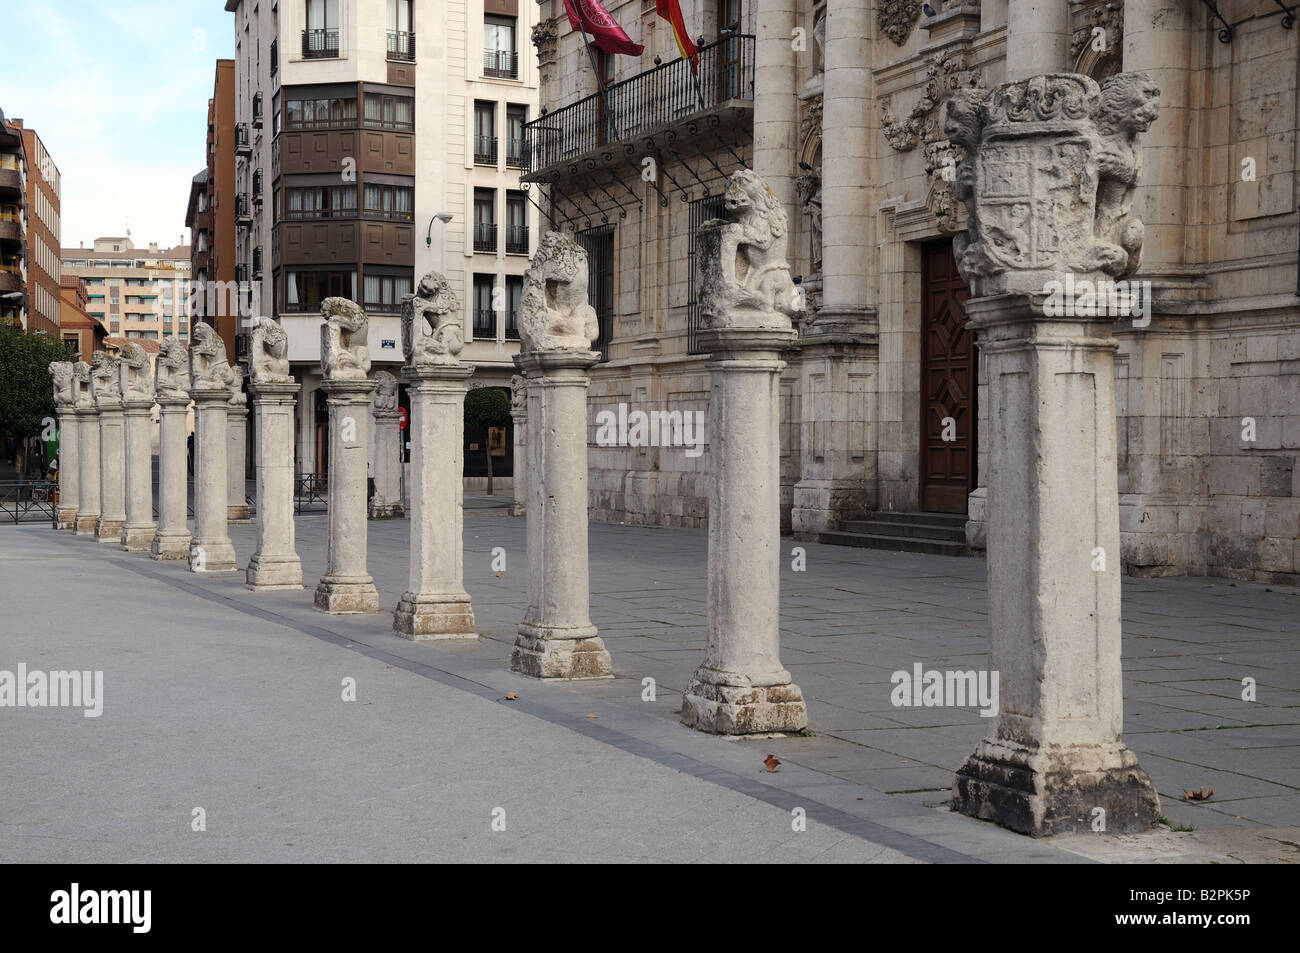 A line of pedestals with stone carved lions in front of the baroque Universidad University Valladolid Spain - Stock Image